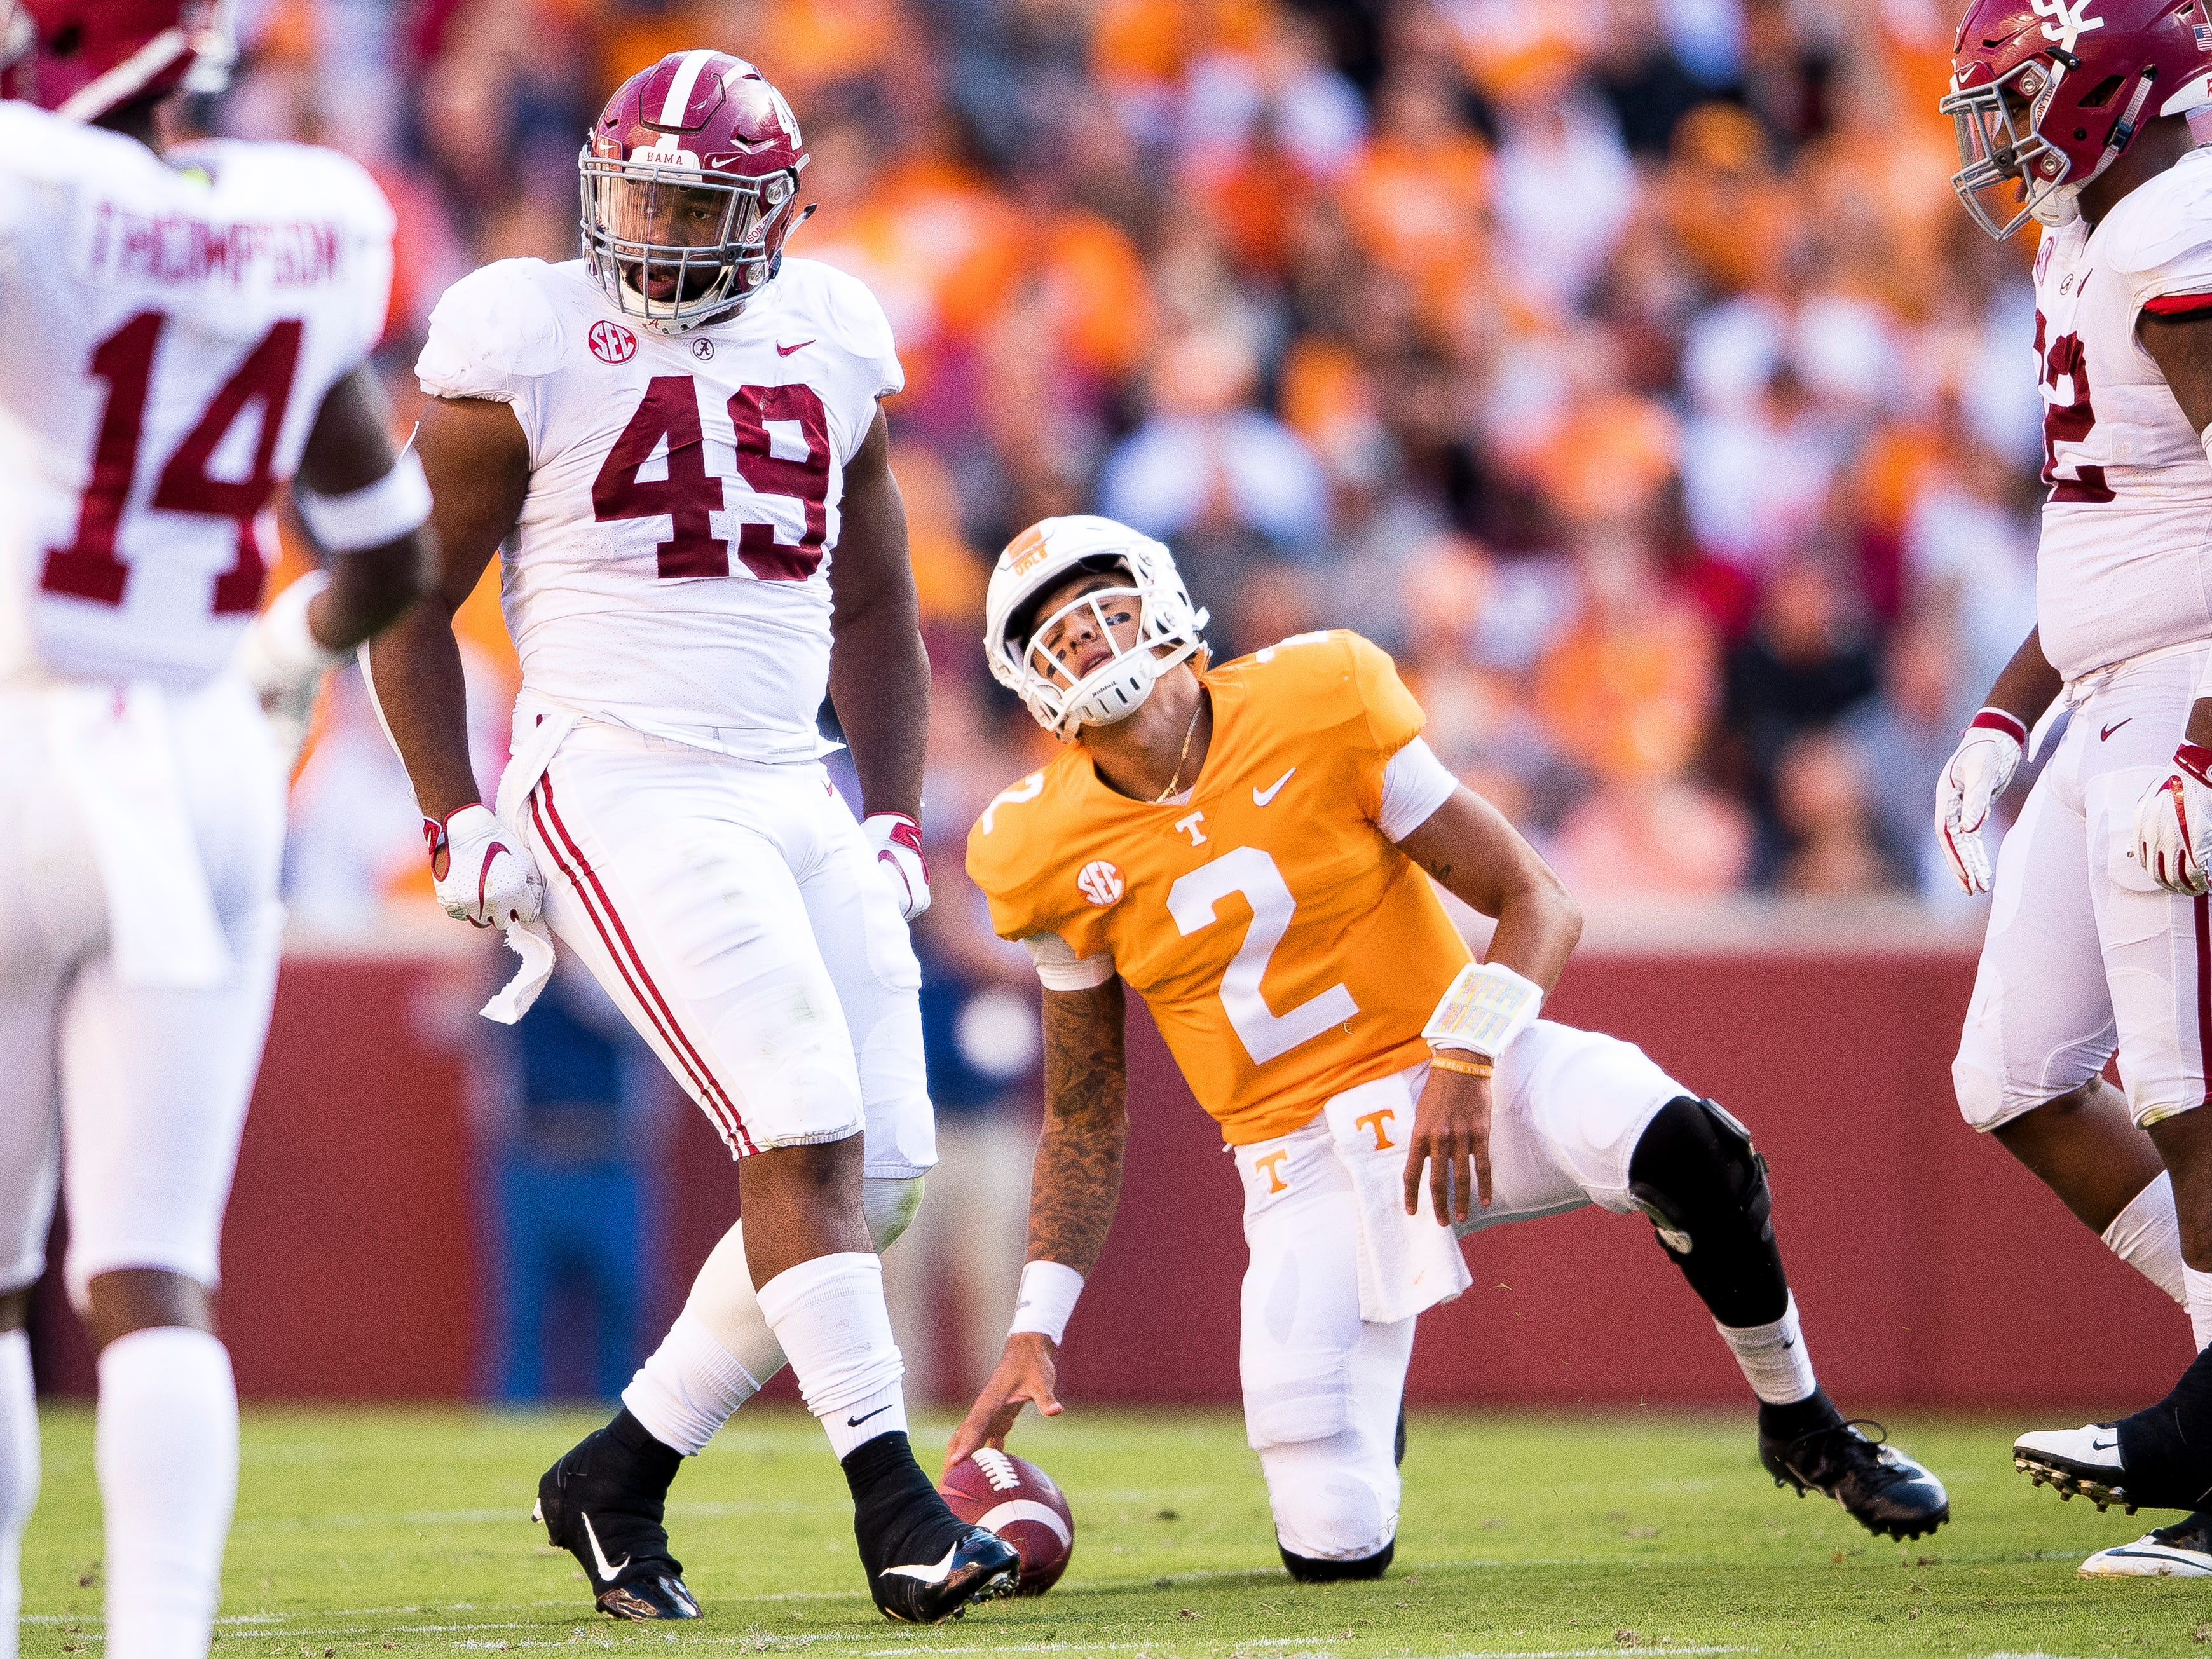 Tennessee quarterback Jarrett Guarantano (2) grimaces as he gets up after being sacked by Alabama defensive lineman Isaiah Buggs (49) during the Tennessee Volunteers' game against Alabama in Neyland Stadium on Saturday, October 20, 2018.